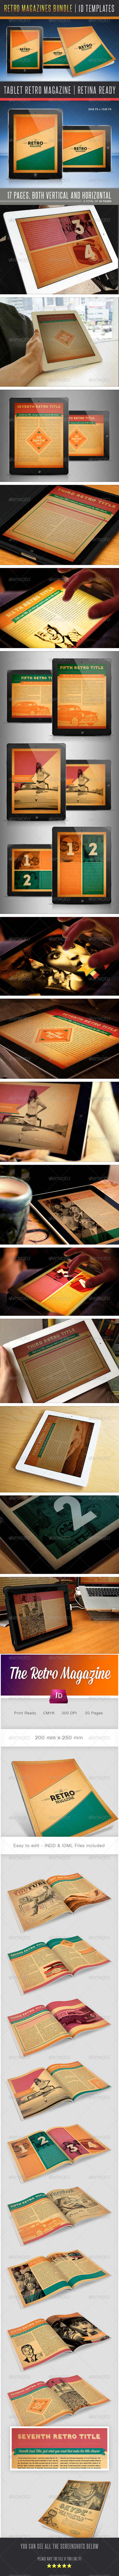 The Retro MGZ Print & Digital - Magazines Print Templates